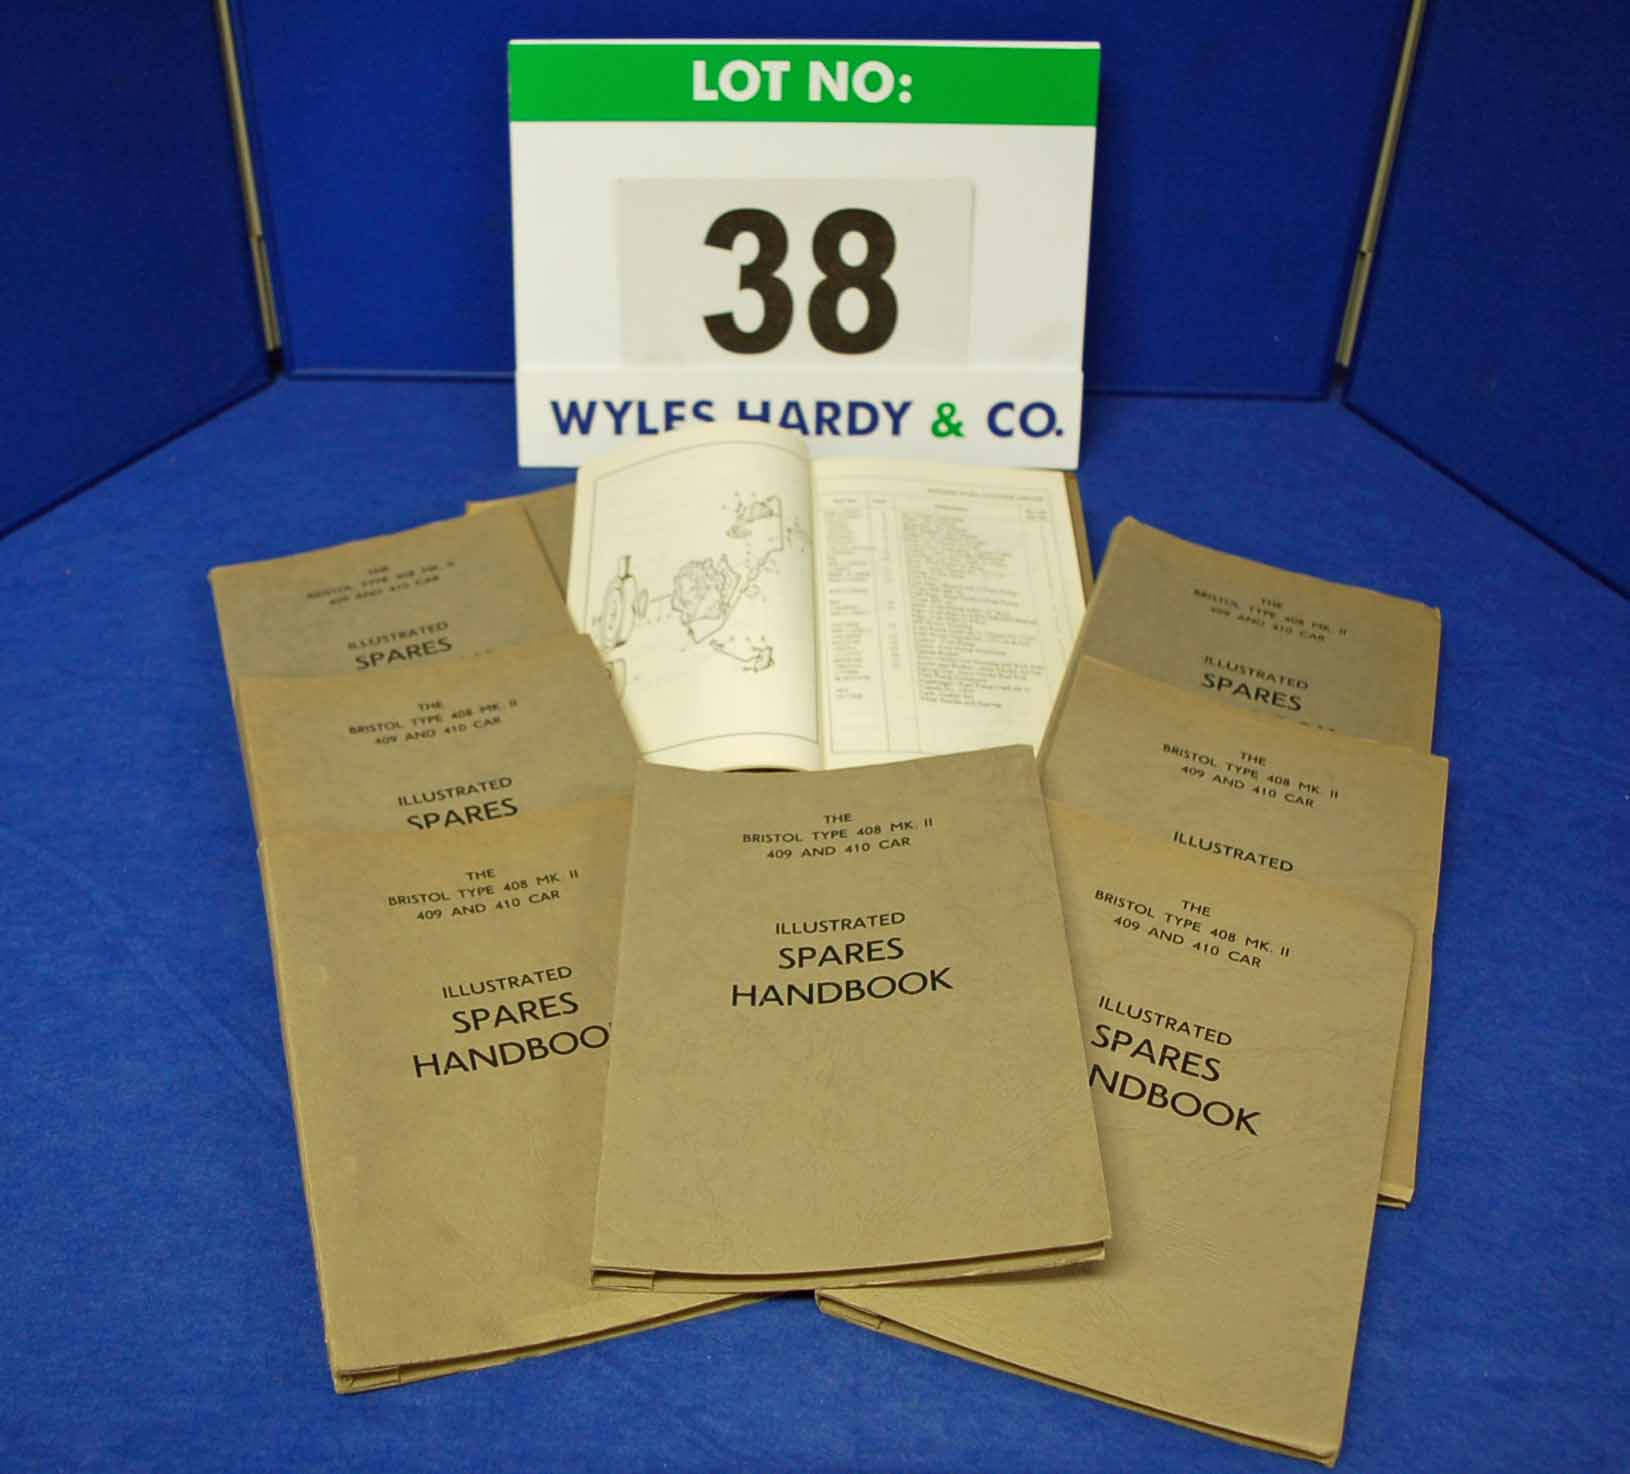 Eight Copies of the Spares Handbook for The Bristol Type 408 Mk II, 409 and 410 Car